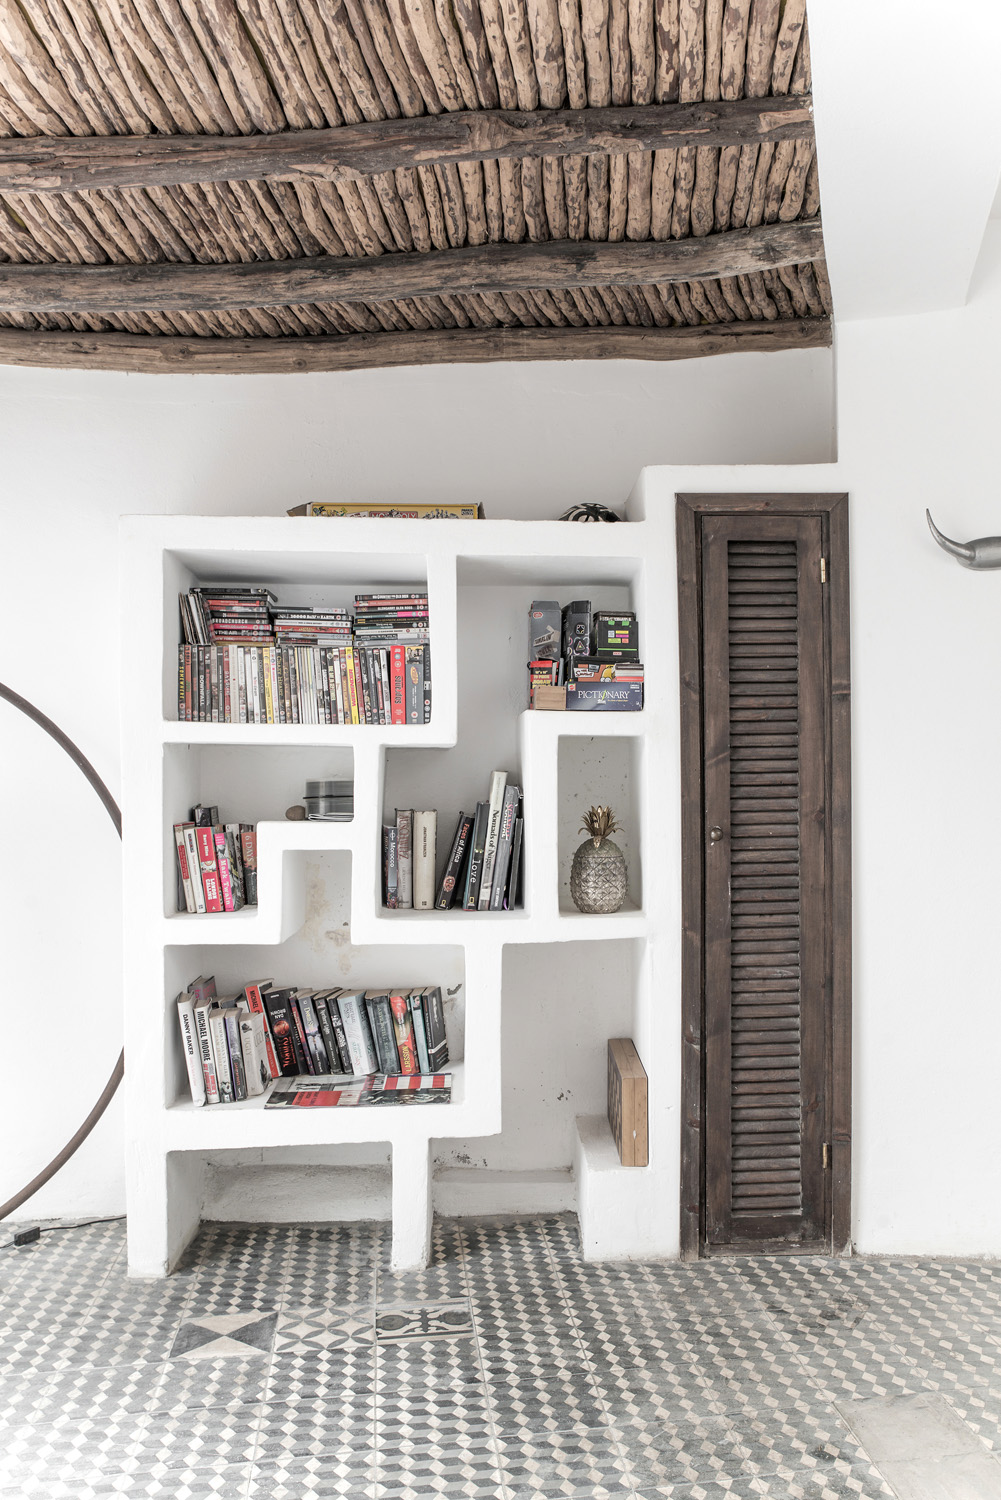 CClassic moroccan features and shelf